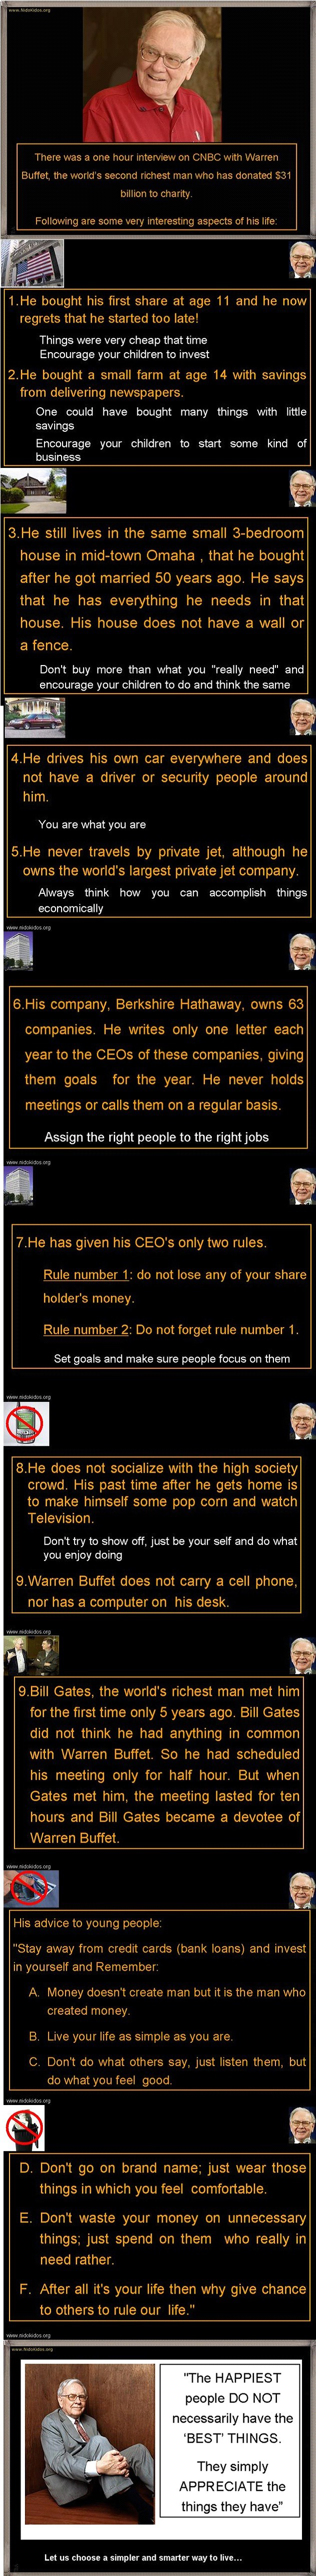 Simple Life Lessons From Warren Buffet The 2nd Richest Man In The World